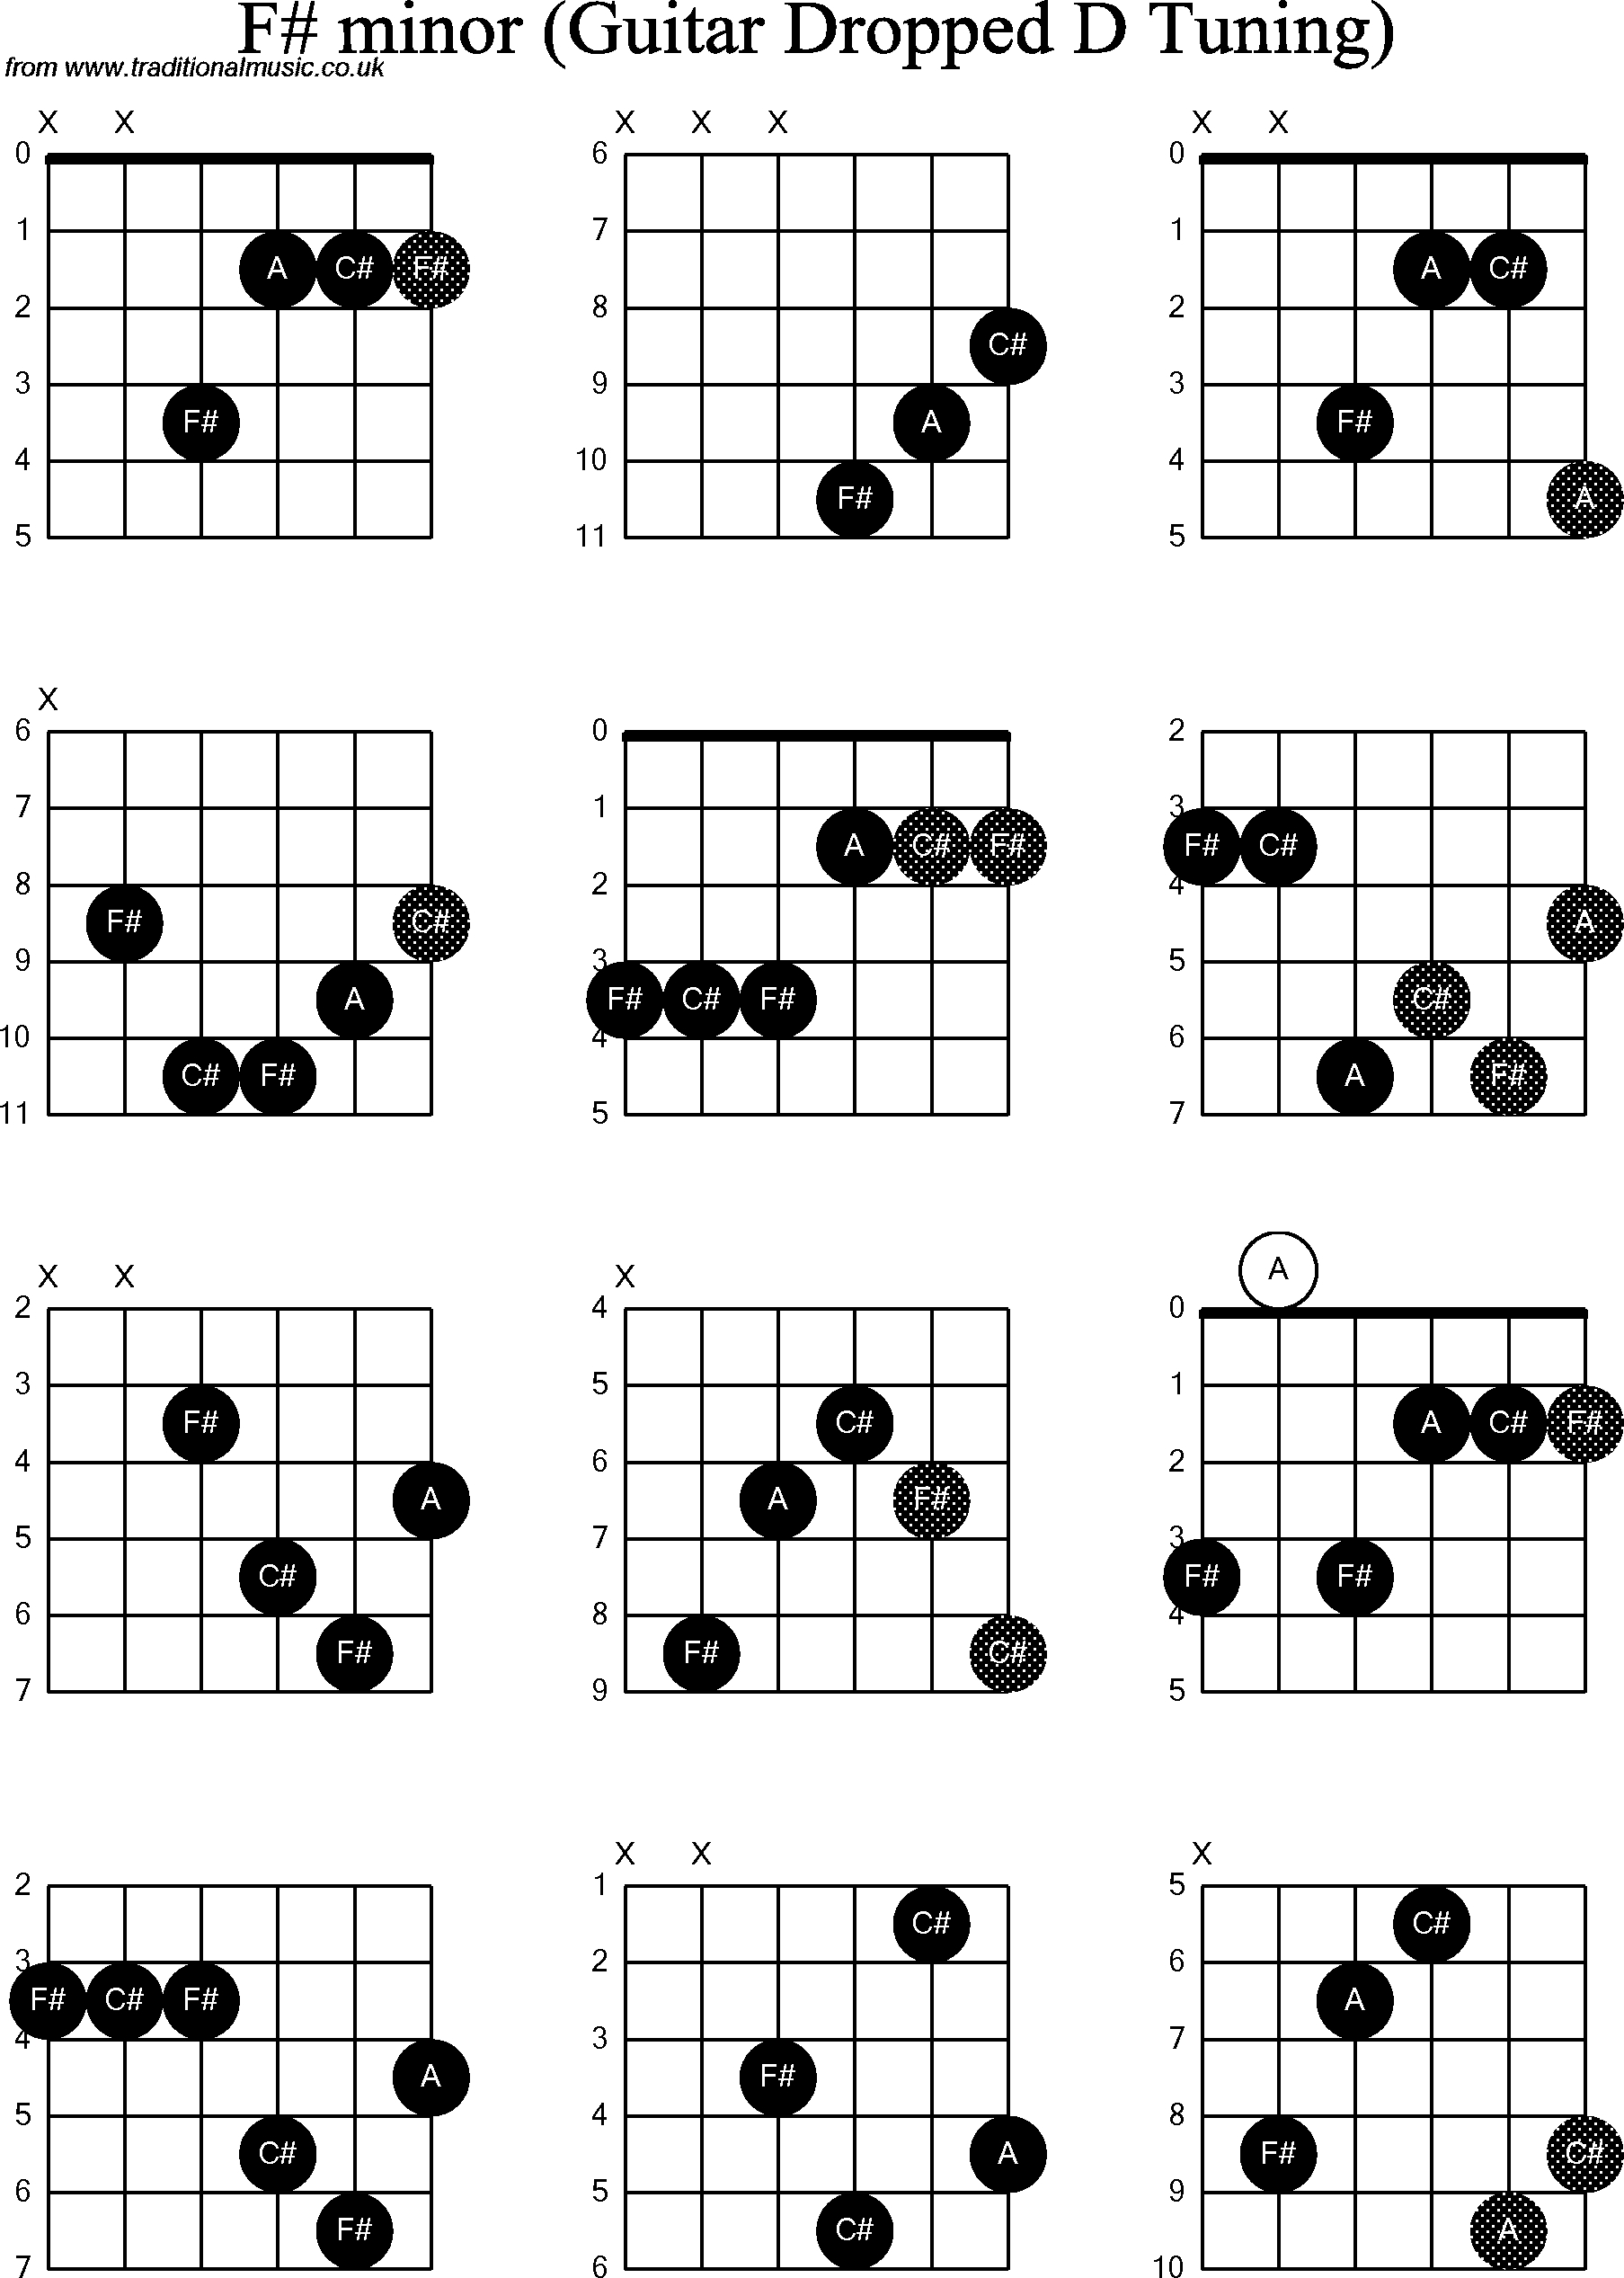 F# Guitar Chord Chord Diagrams For Dropped D Guitardadgbe F Sharp Minor